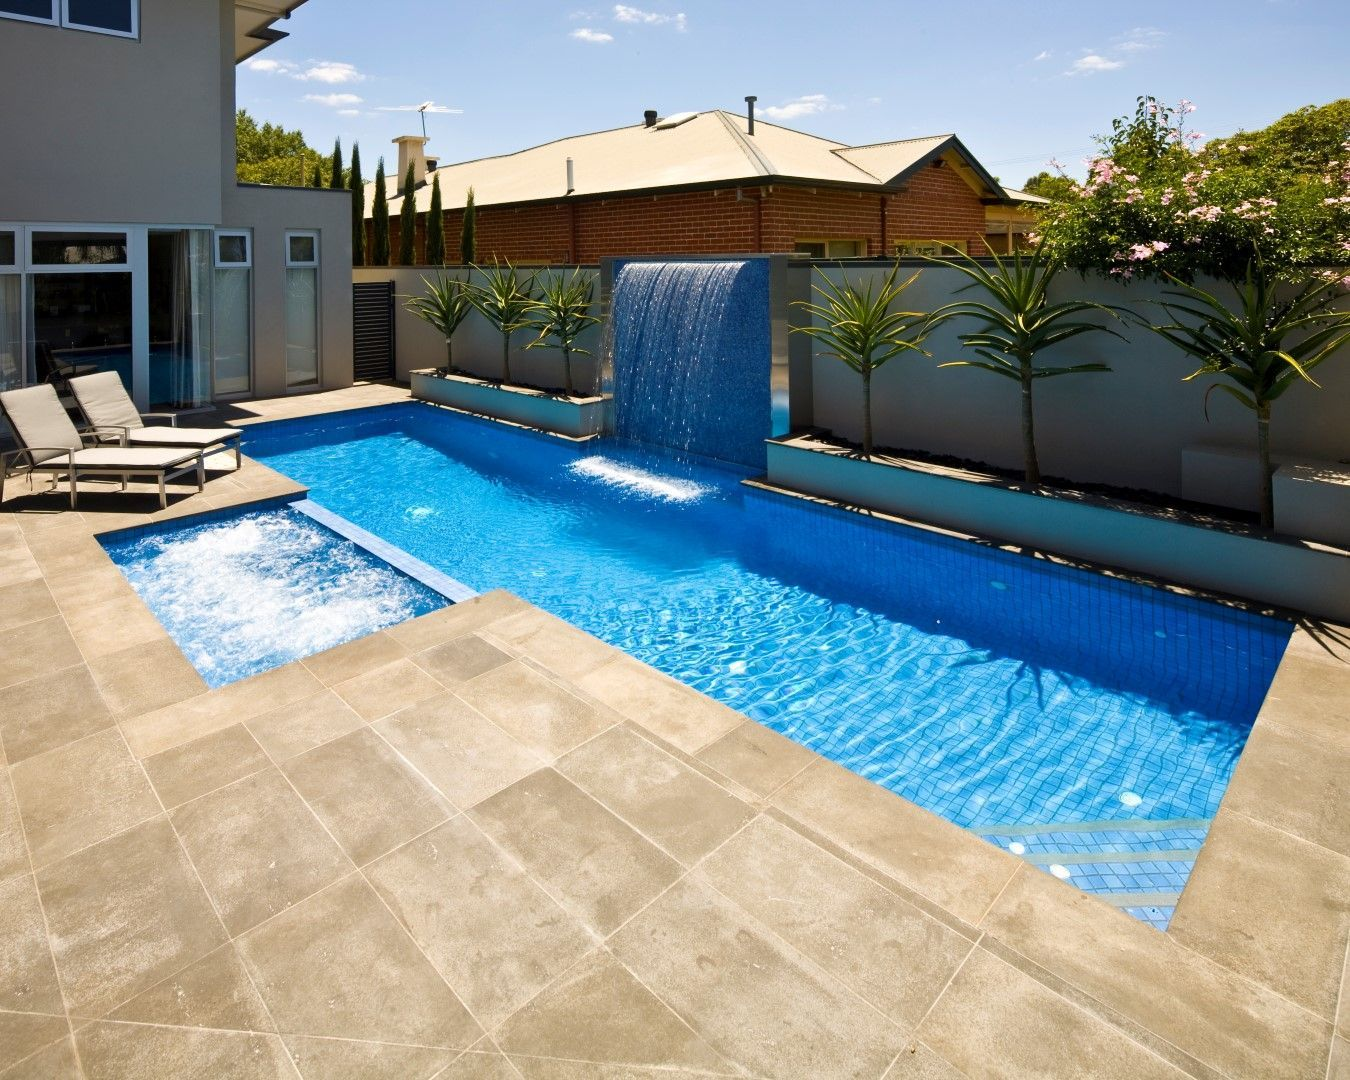 16 Small Backyard Pool Landscaping Ideas Most Of The Appealing As Well As Grand Too Backyard Pool Landscaping Cool Swimming Pools Small Backyard Pools